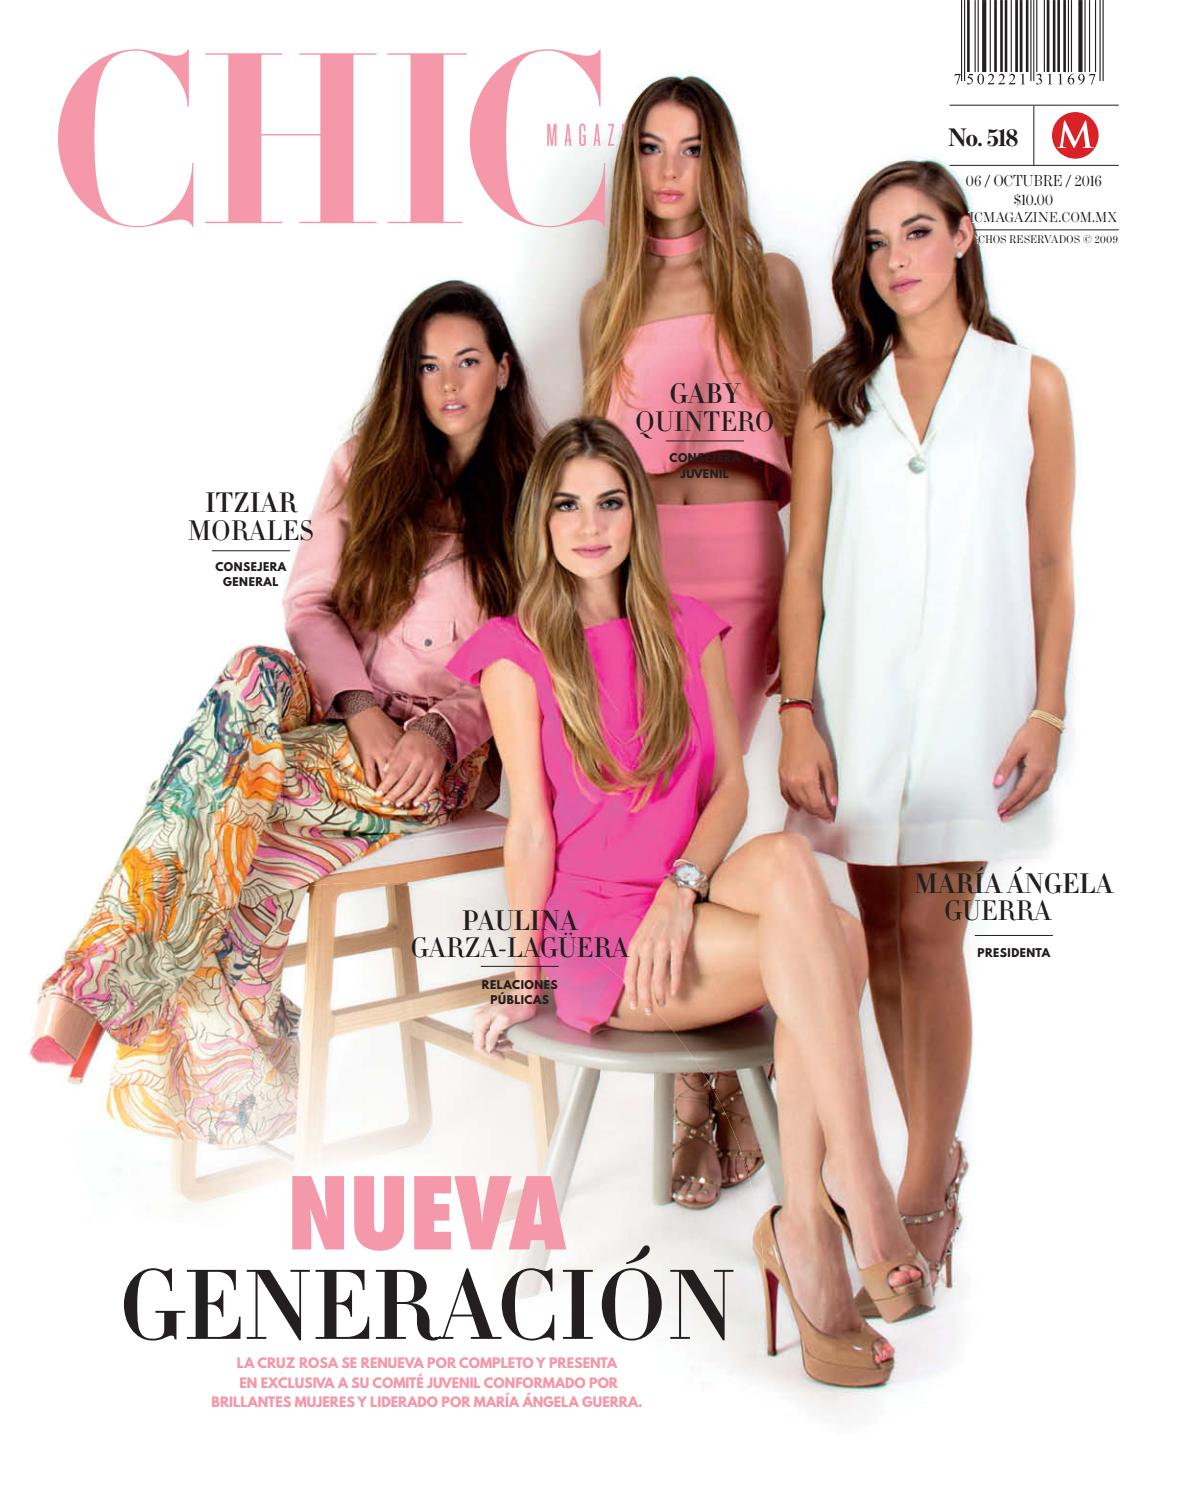 Chic Magazine Monterrey, núm. 518, 06/oct/2016 by Chic Magazine ...